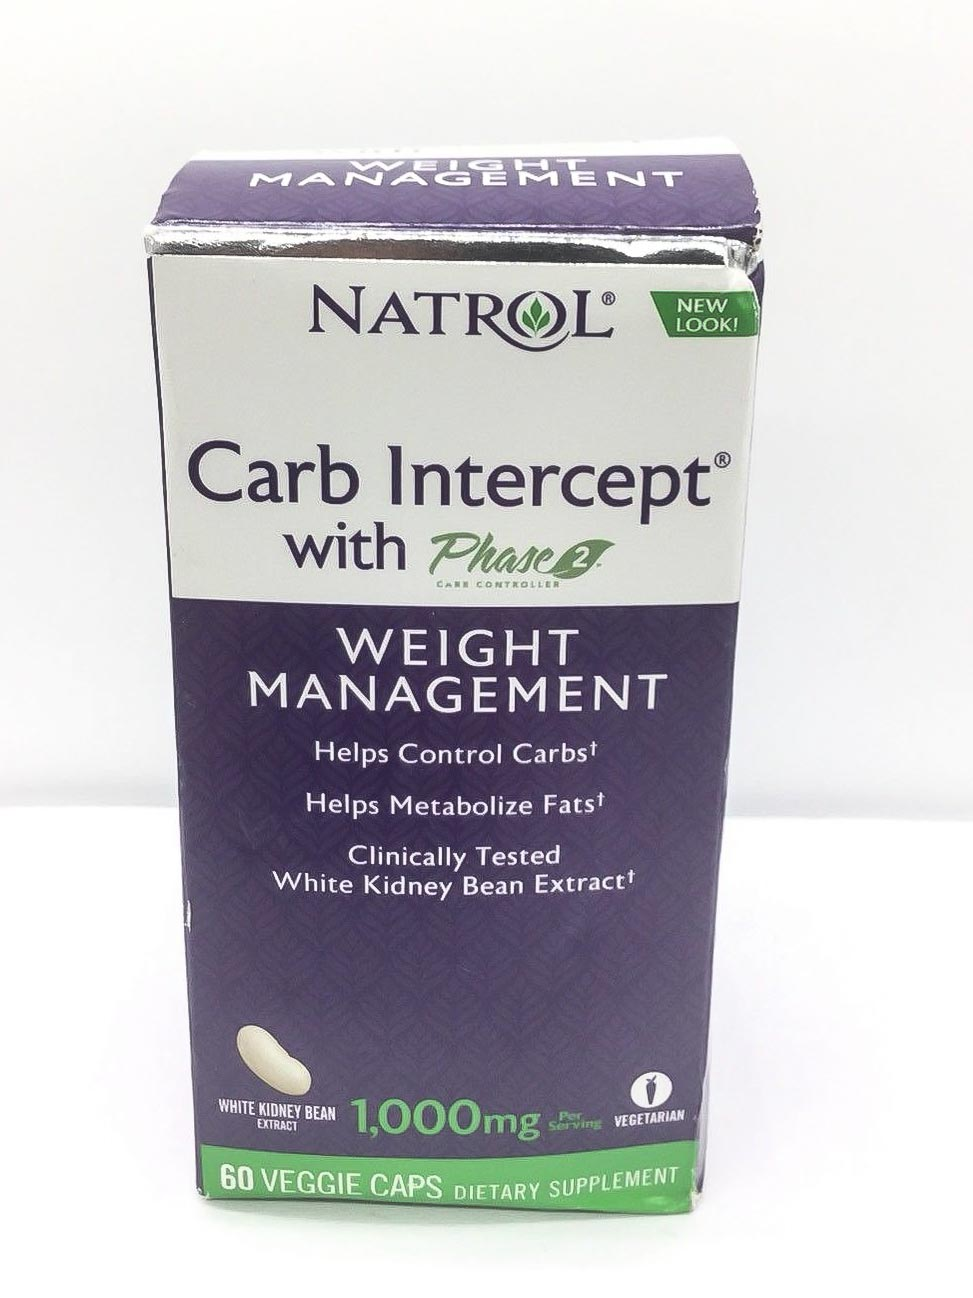 Image of a box of Natrol Carb Intercept With Phase 2